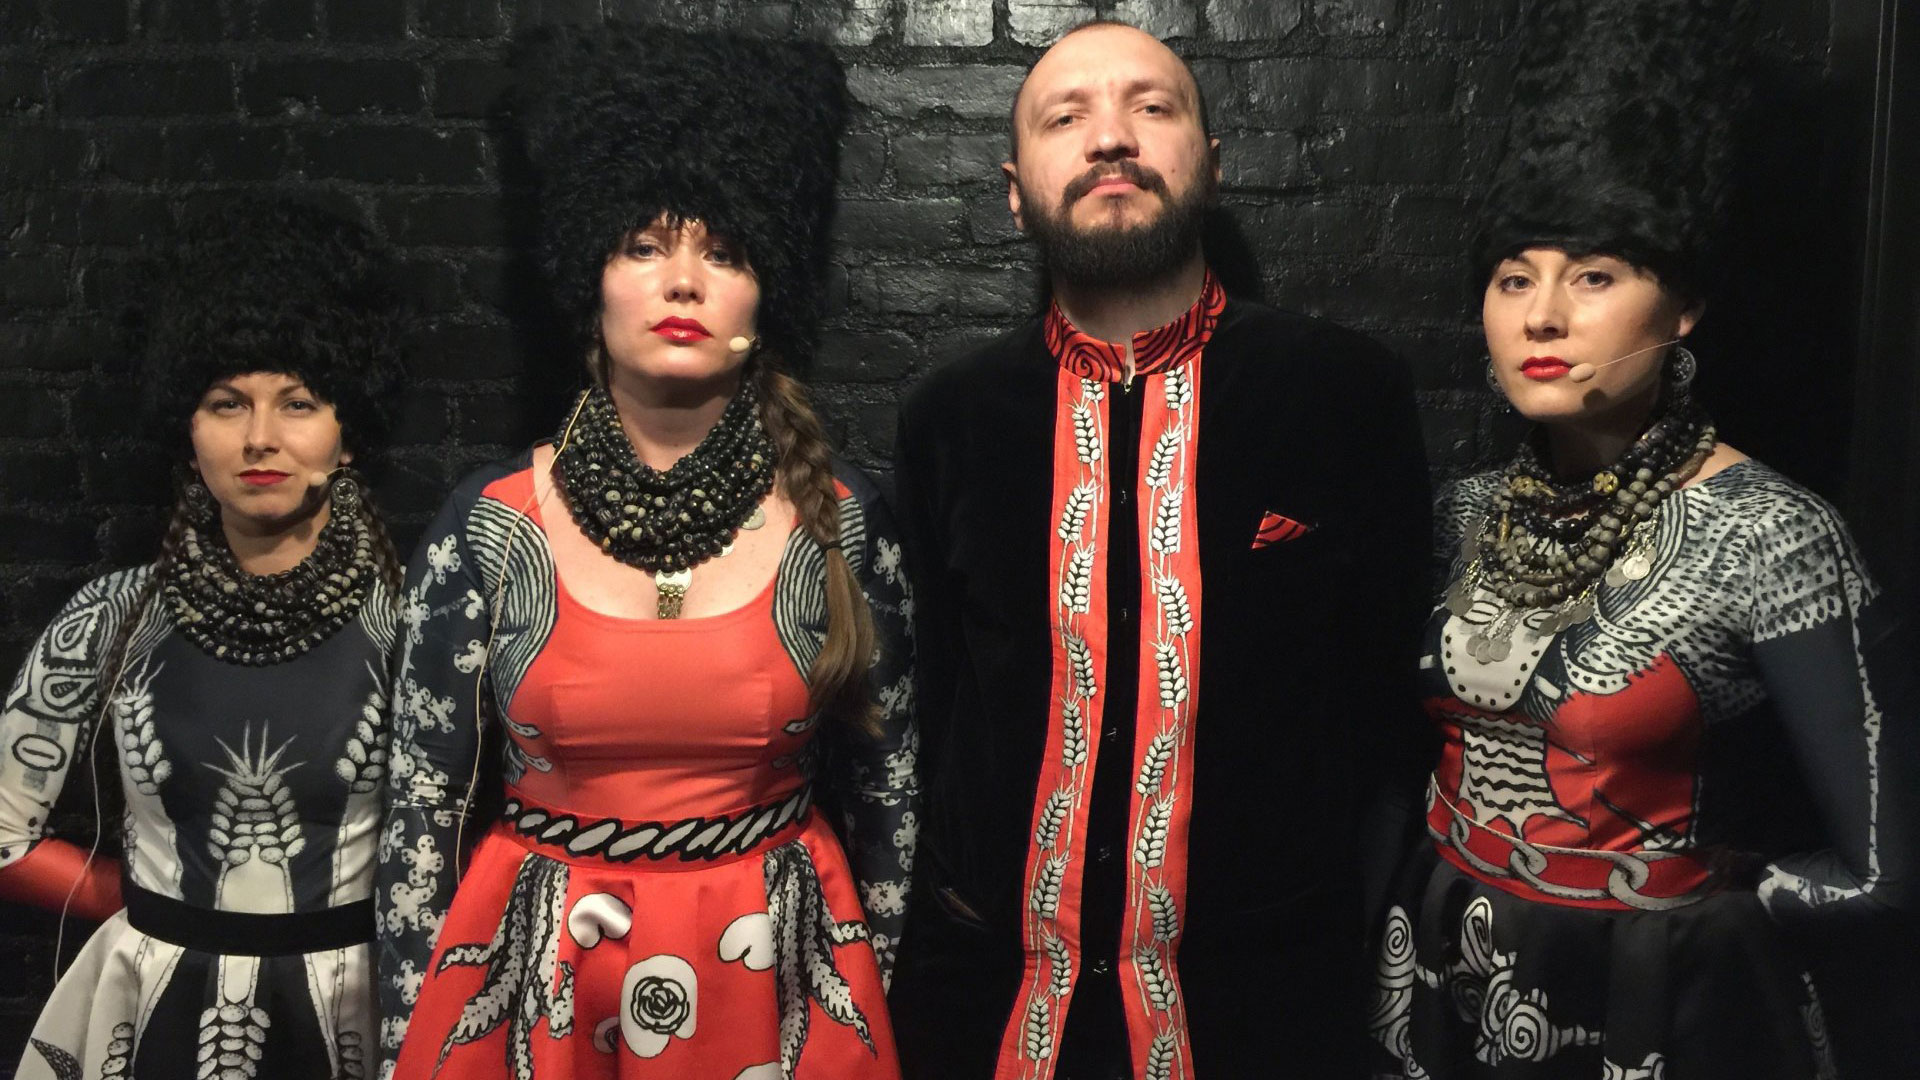 DakhaBrakha perform their score for classic Soviet silent film 'Earth' on Friday, Aug. 19, at the SFJAZZ Center.